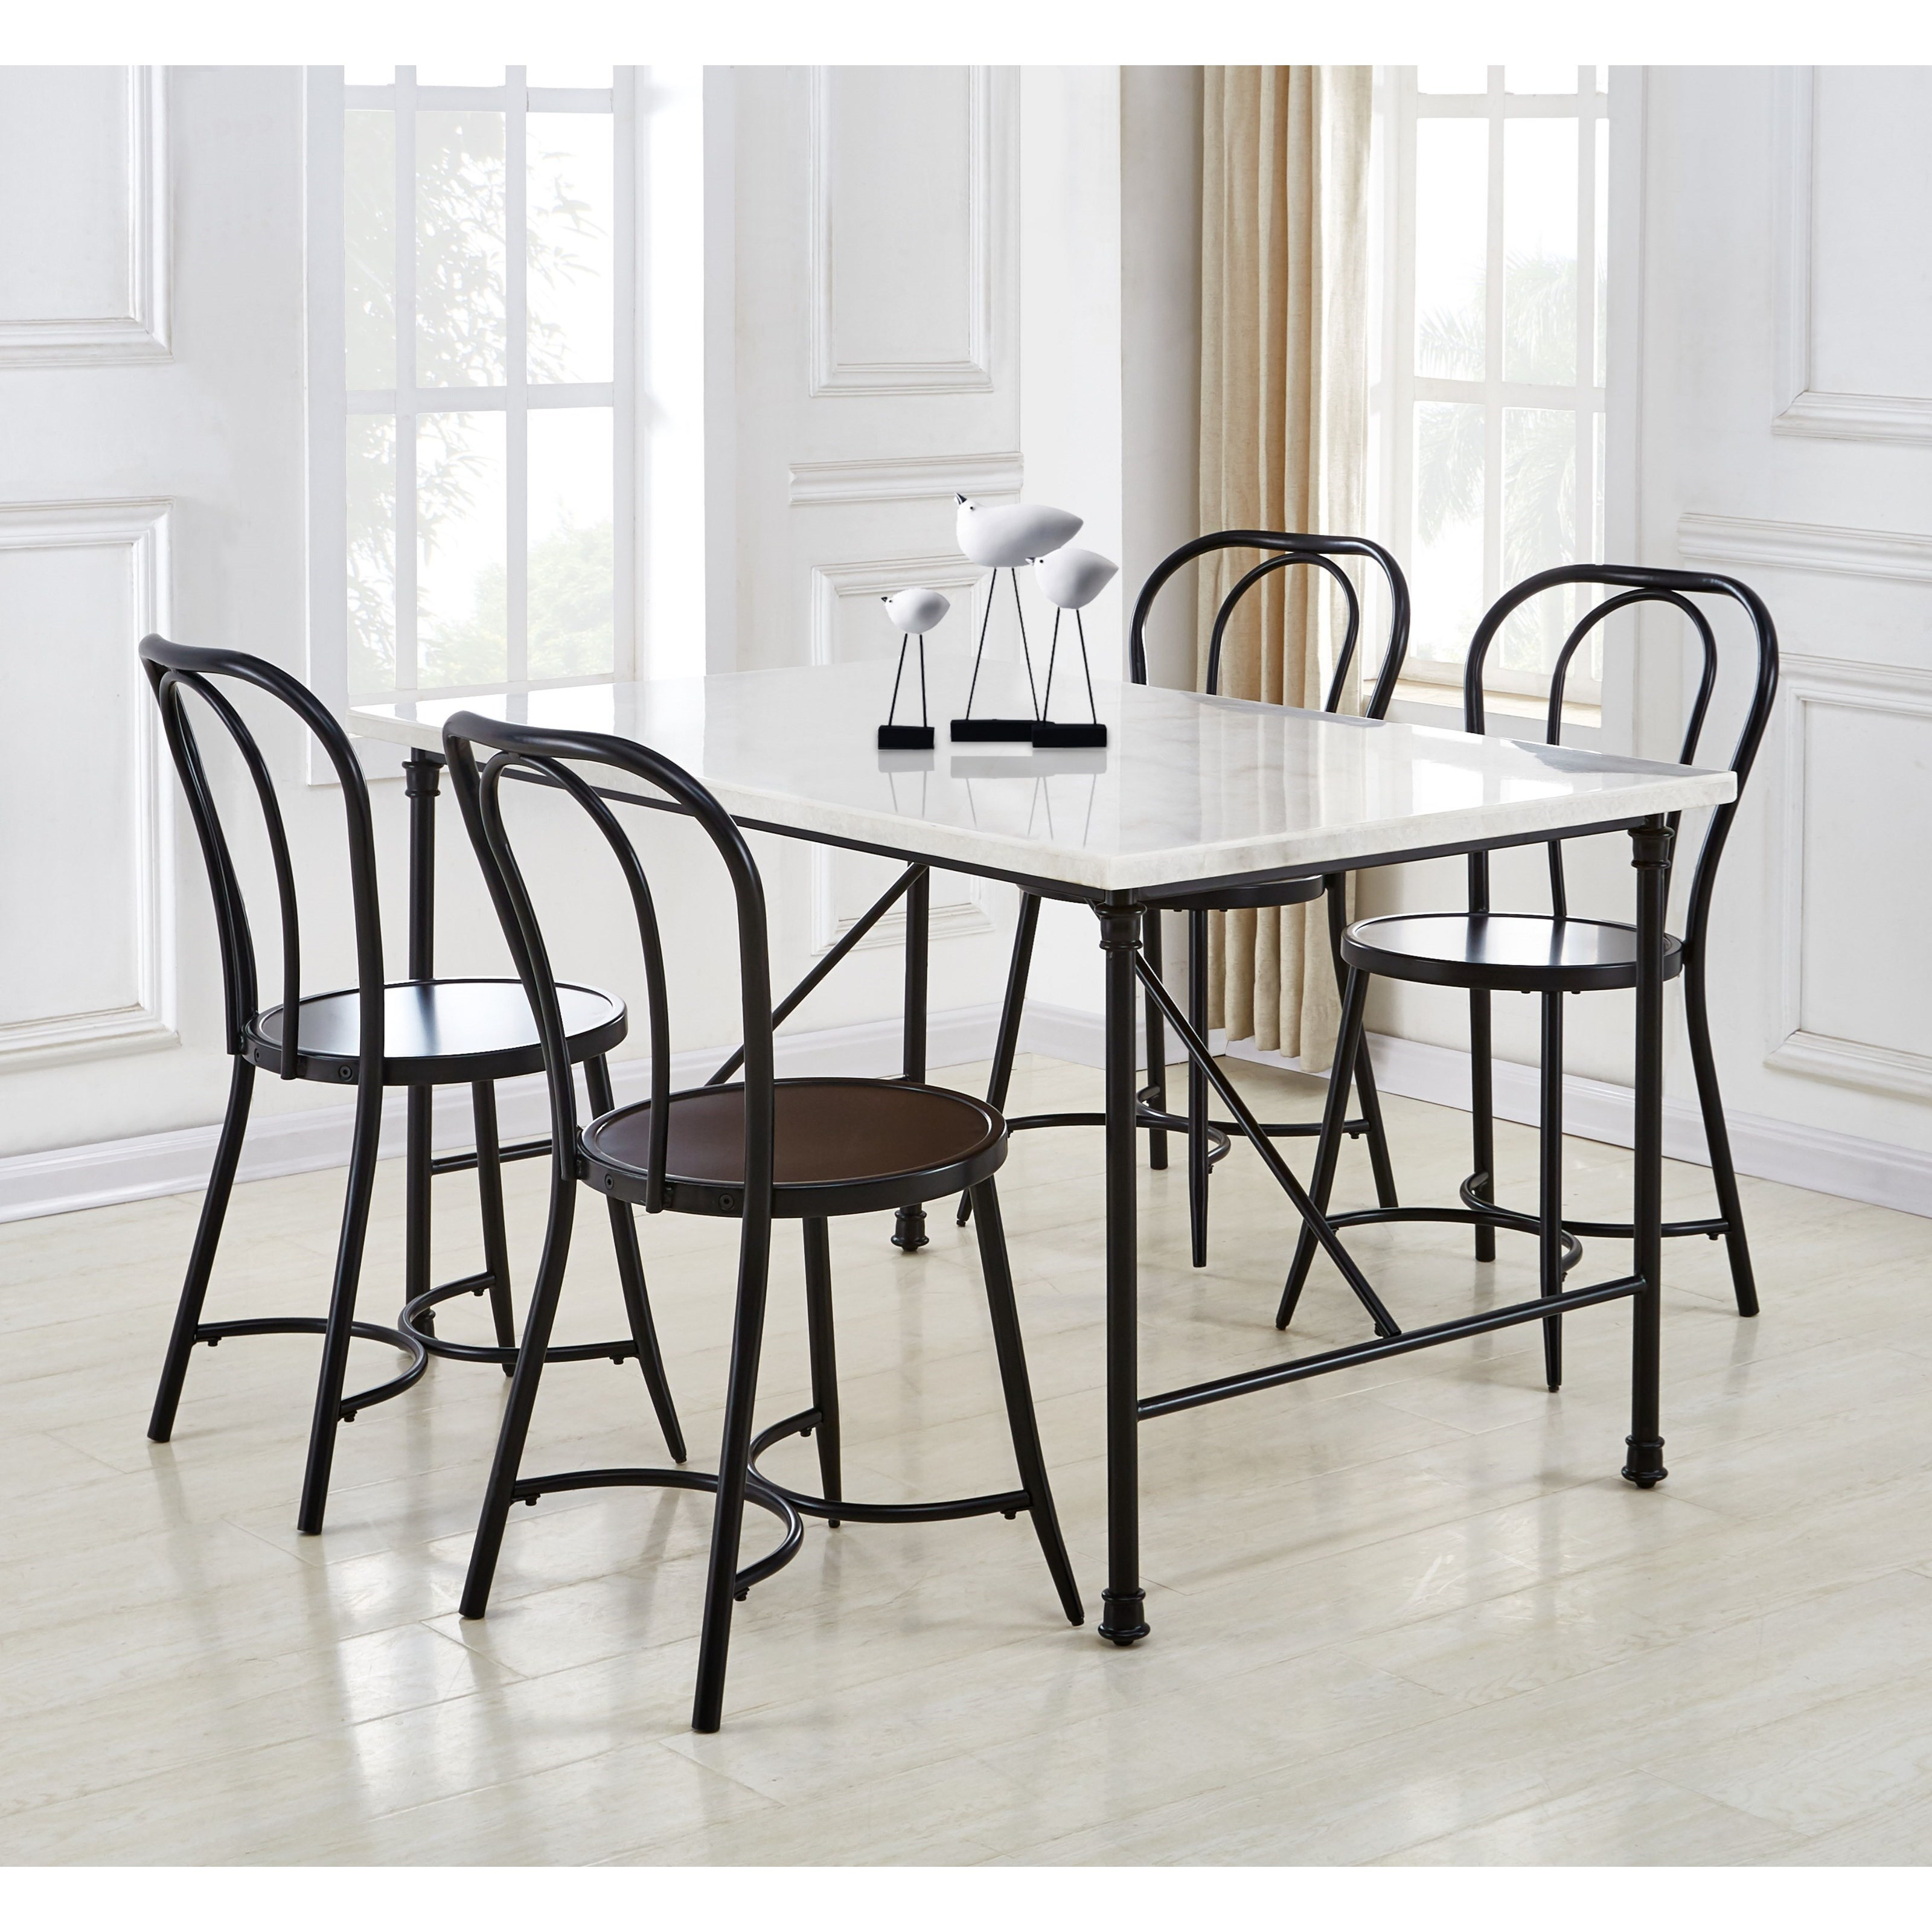 Claire 5-Piece Table and Chair Set by Steve Silver at Walker's Furniture